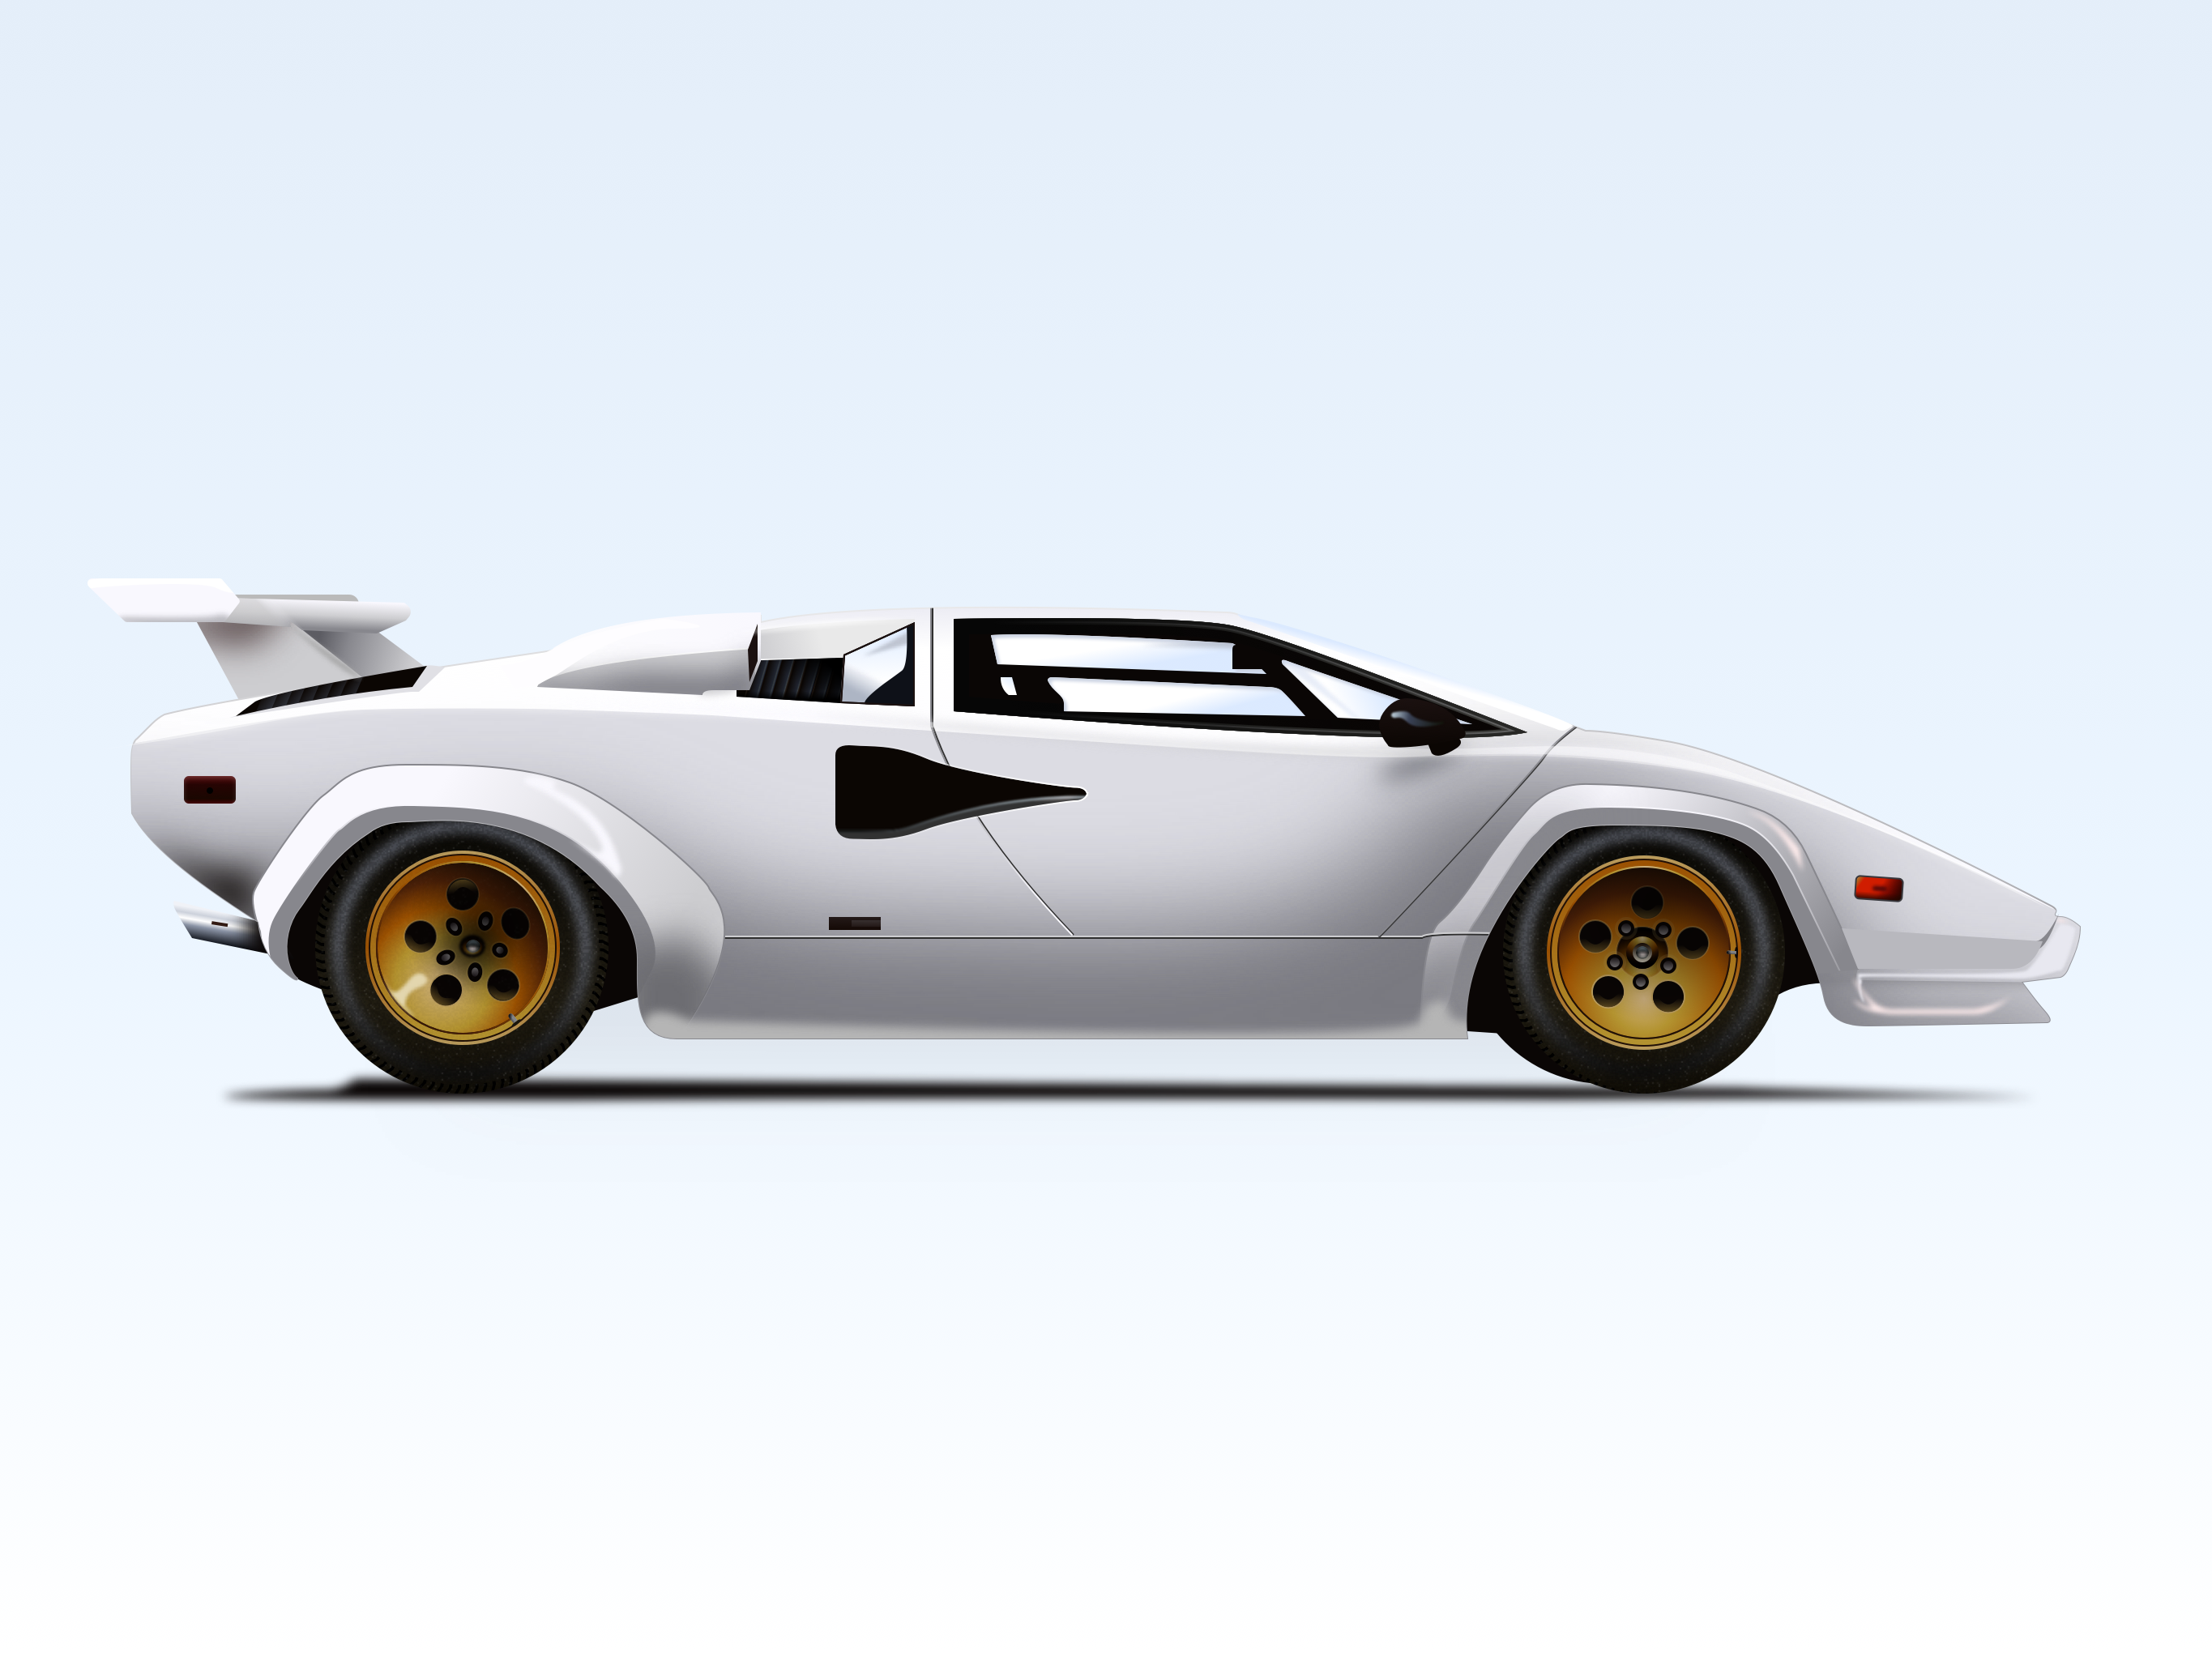 10. illustration countach 2x